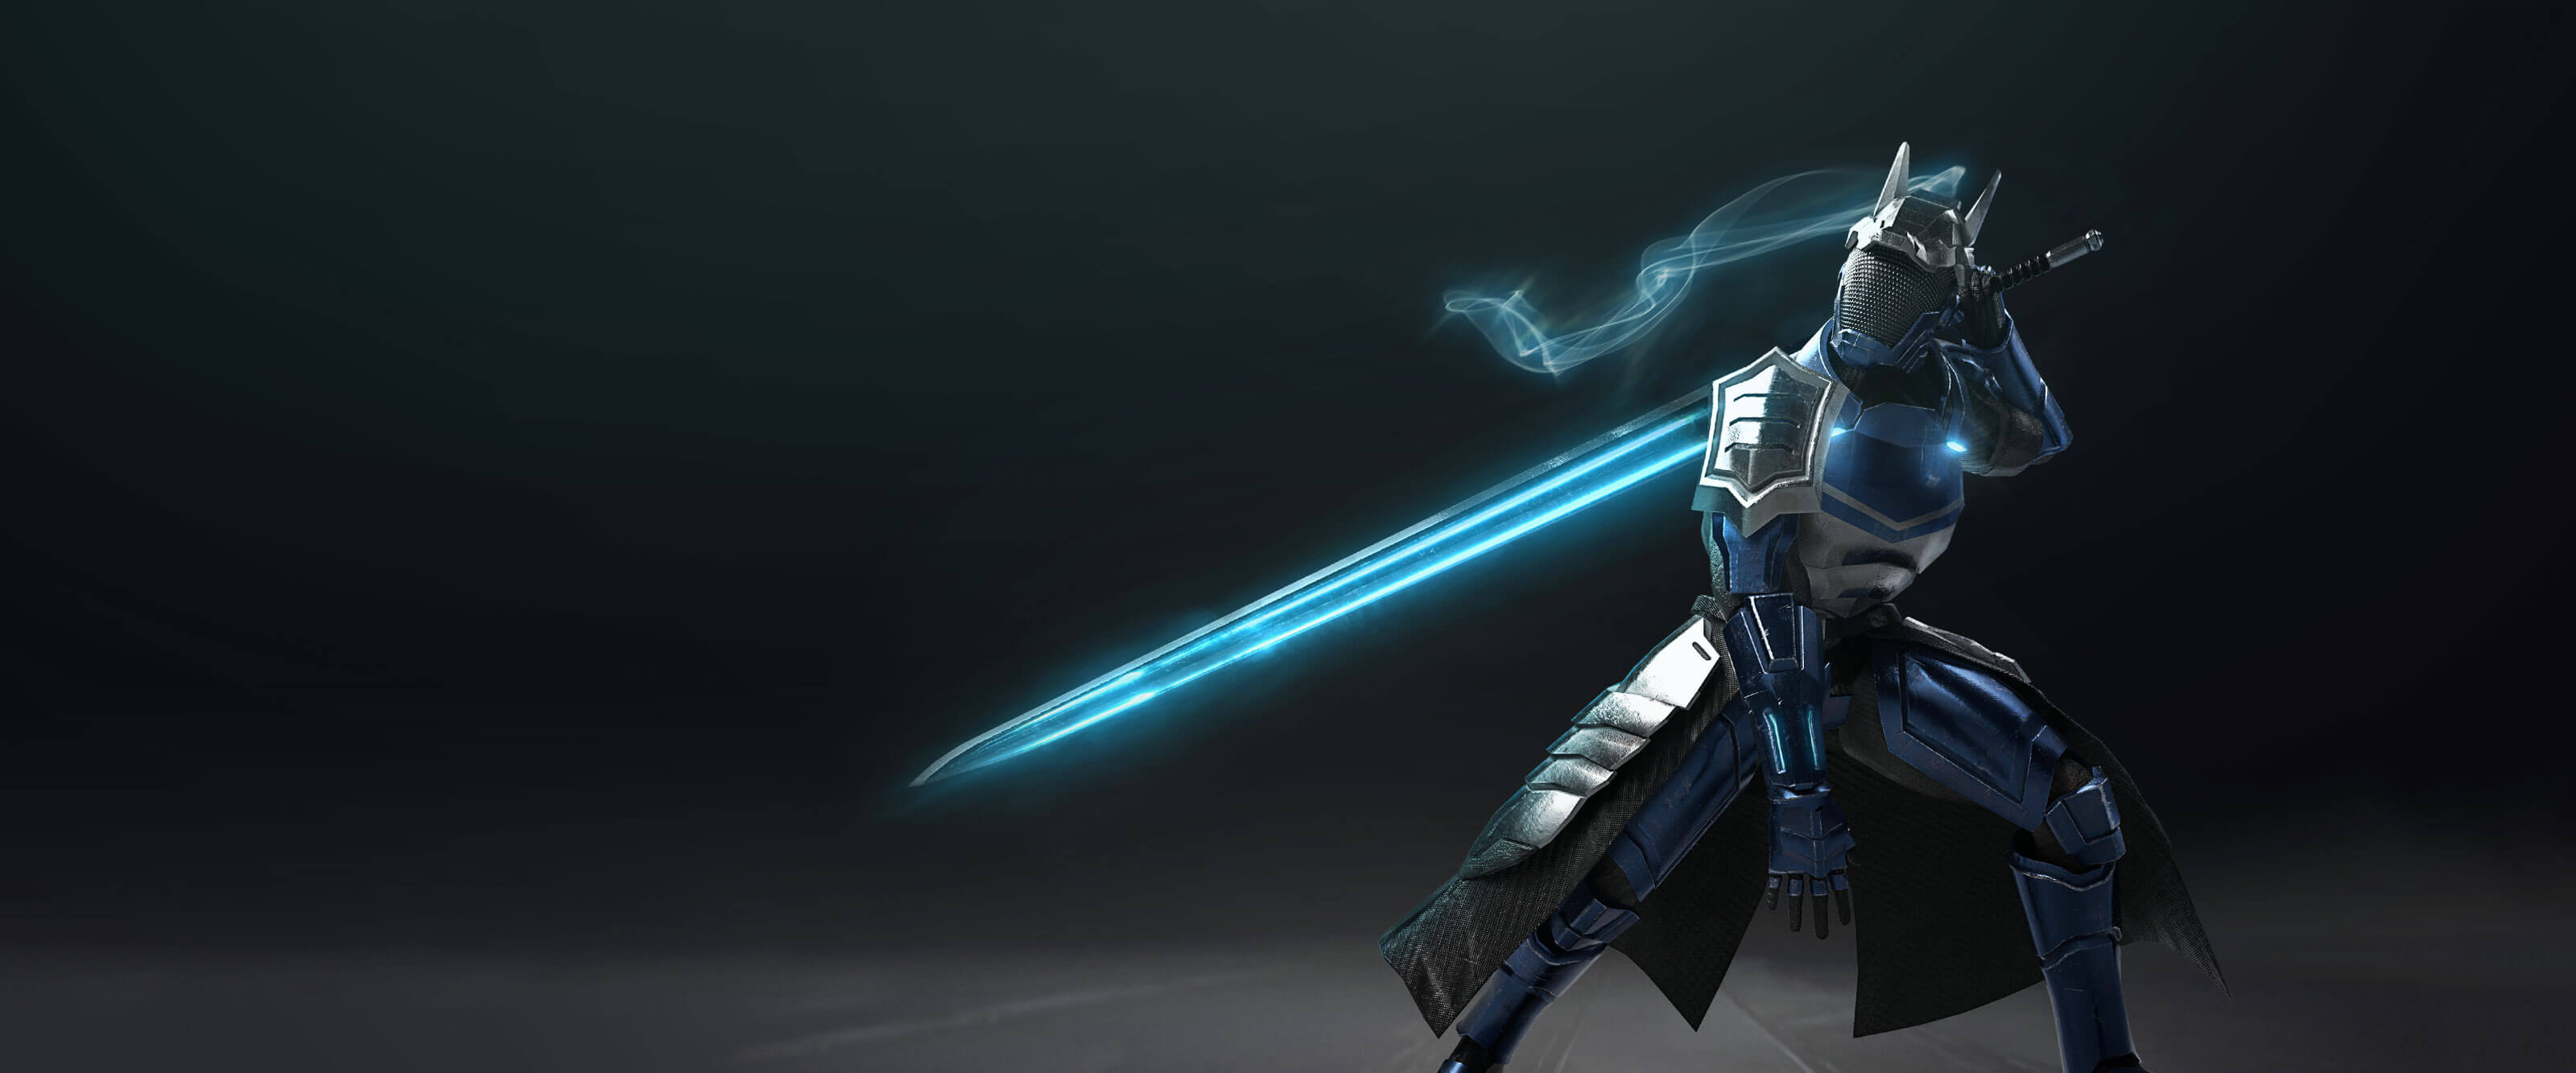 A DigiPen student's digital model of a futuristic knight in blue and chrome trimmed armor posing with a long, glowing blue sword behind its back.